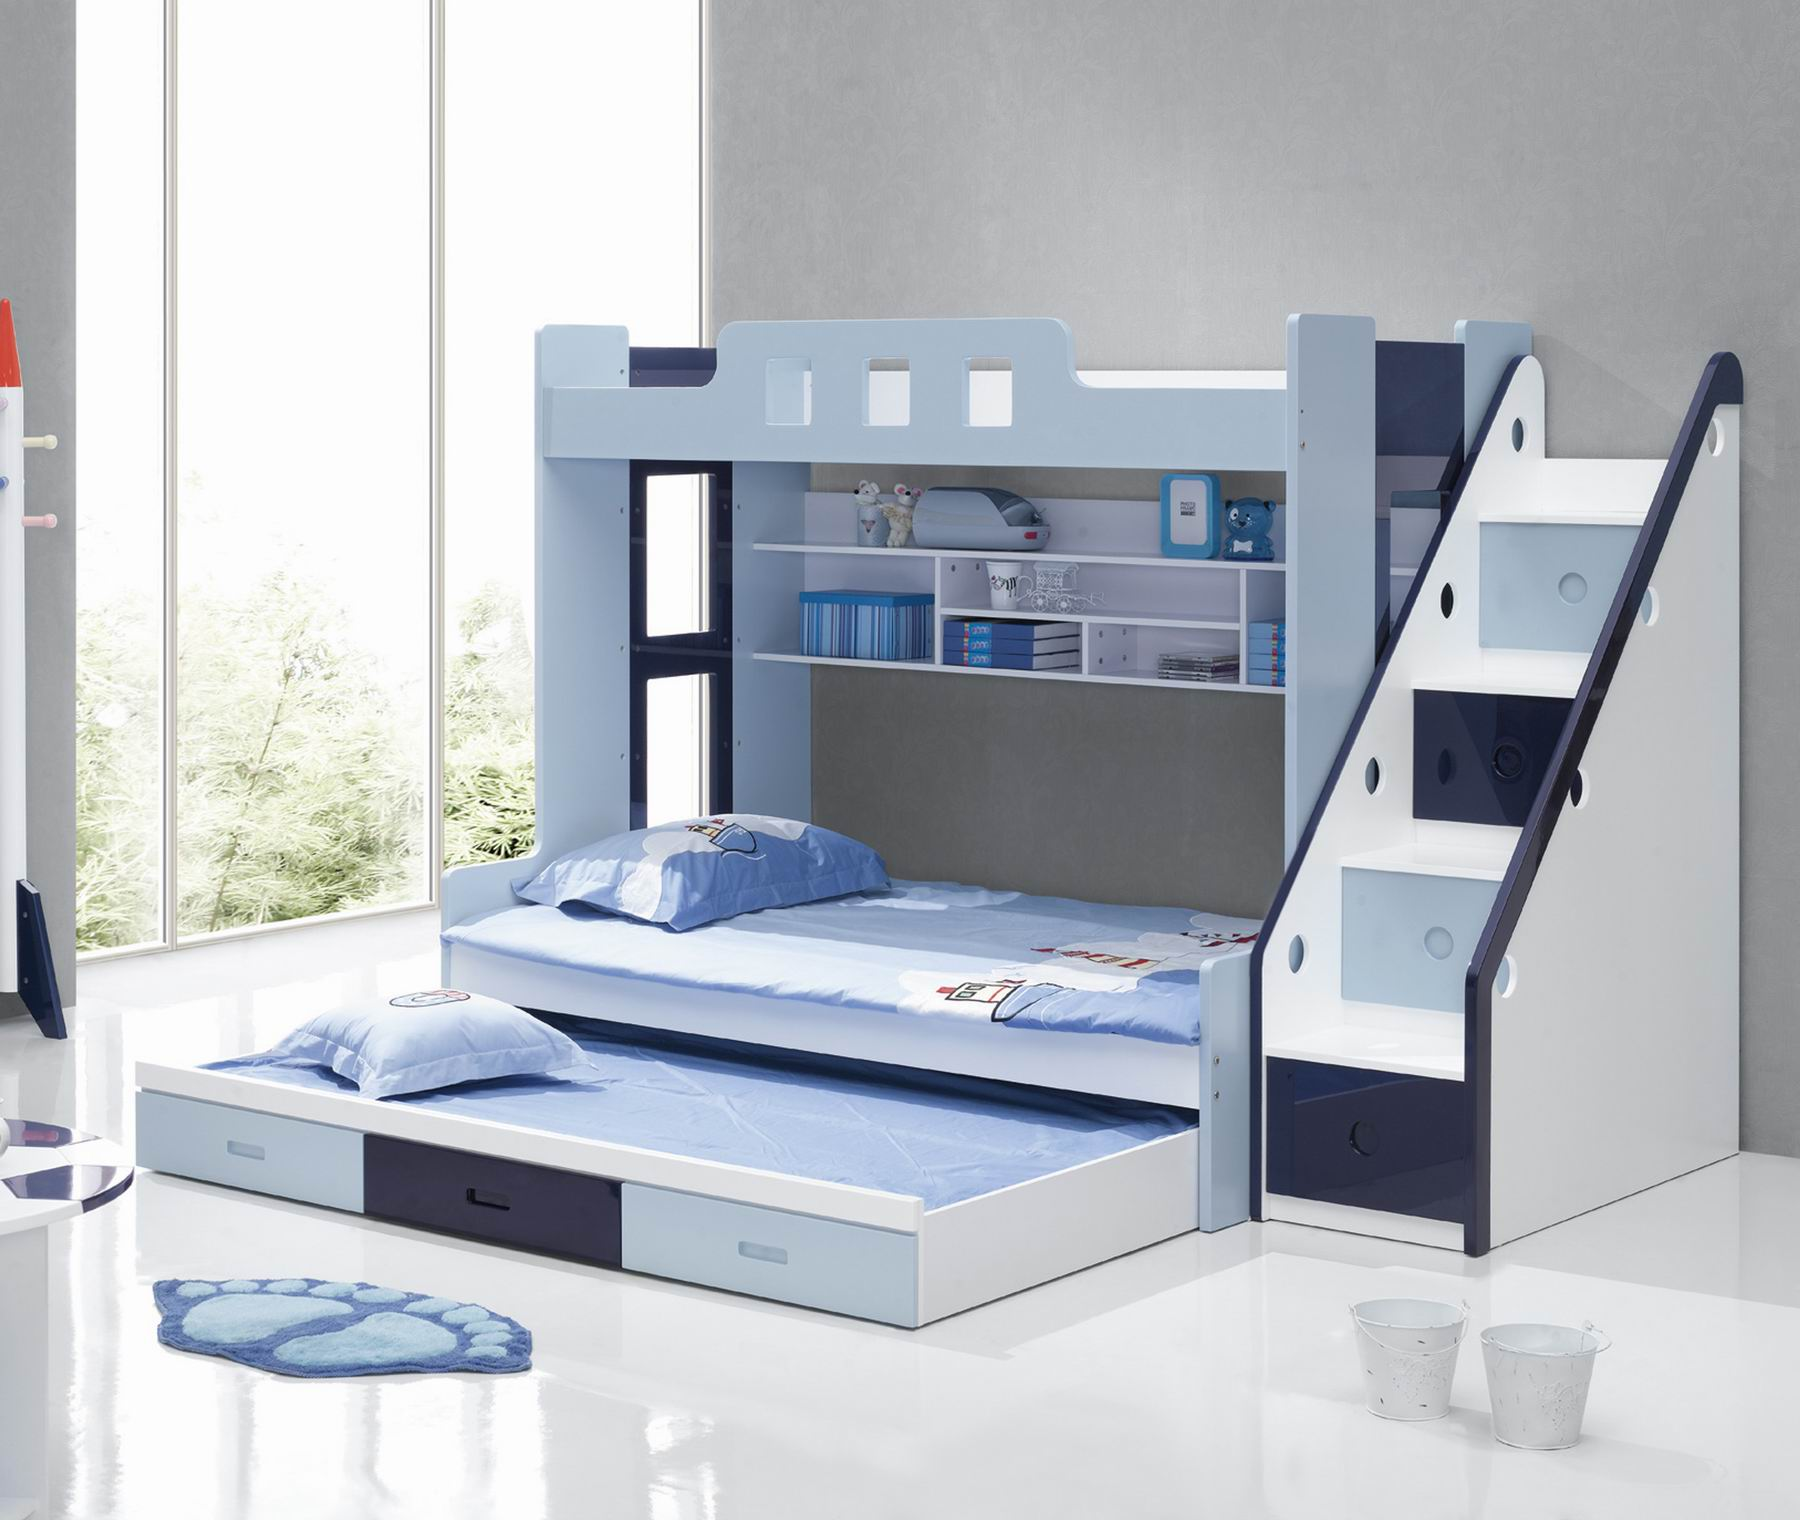 over Full Bunk Bed Chocolate Bunk Beds & Loft Beds at Hayneedle